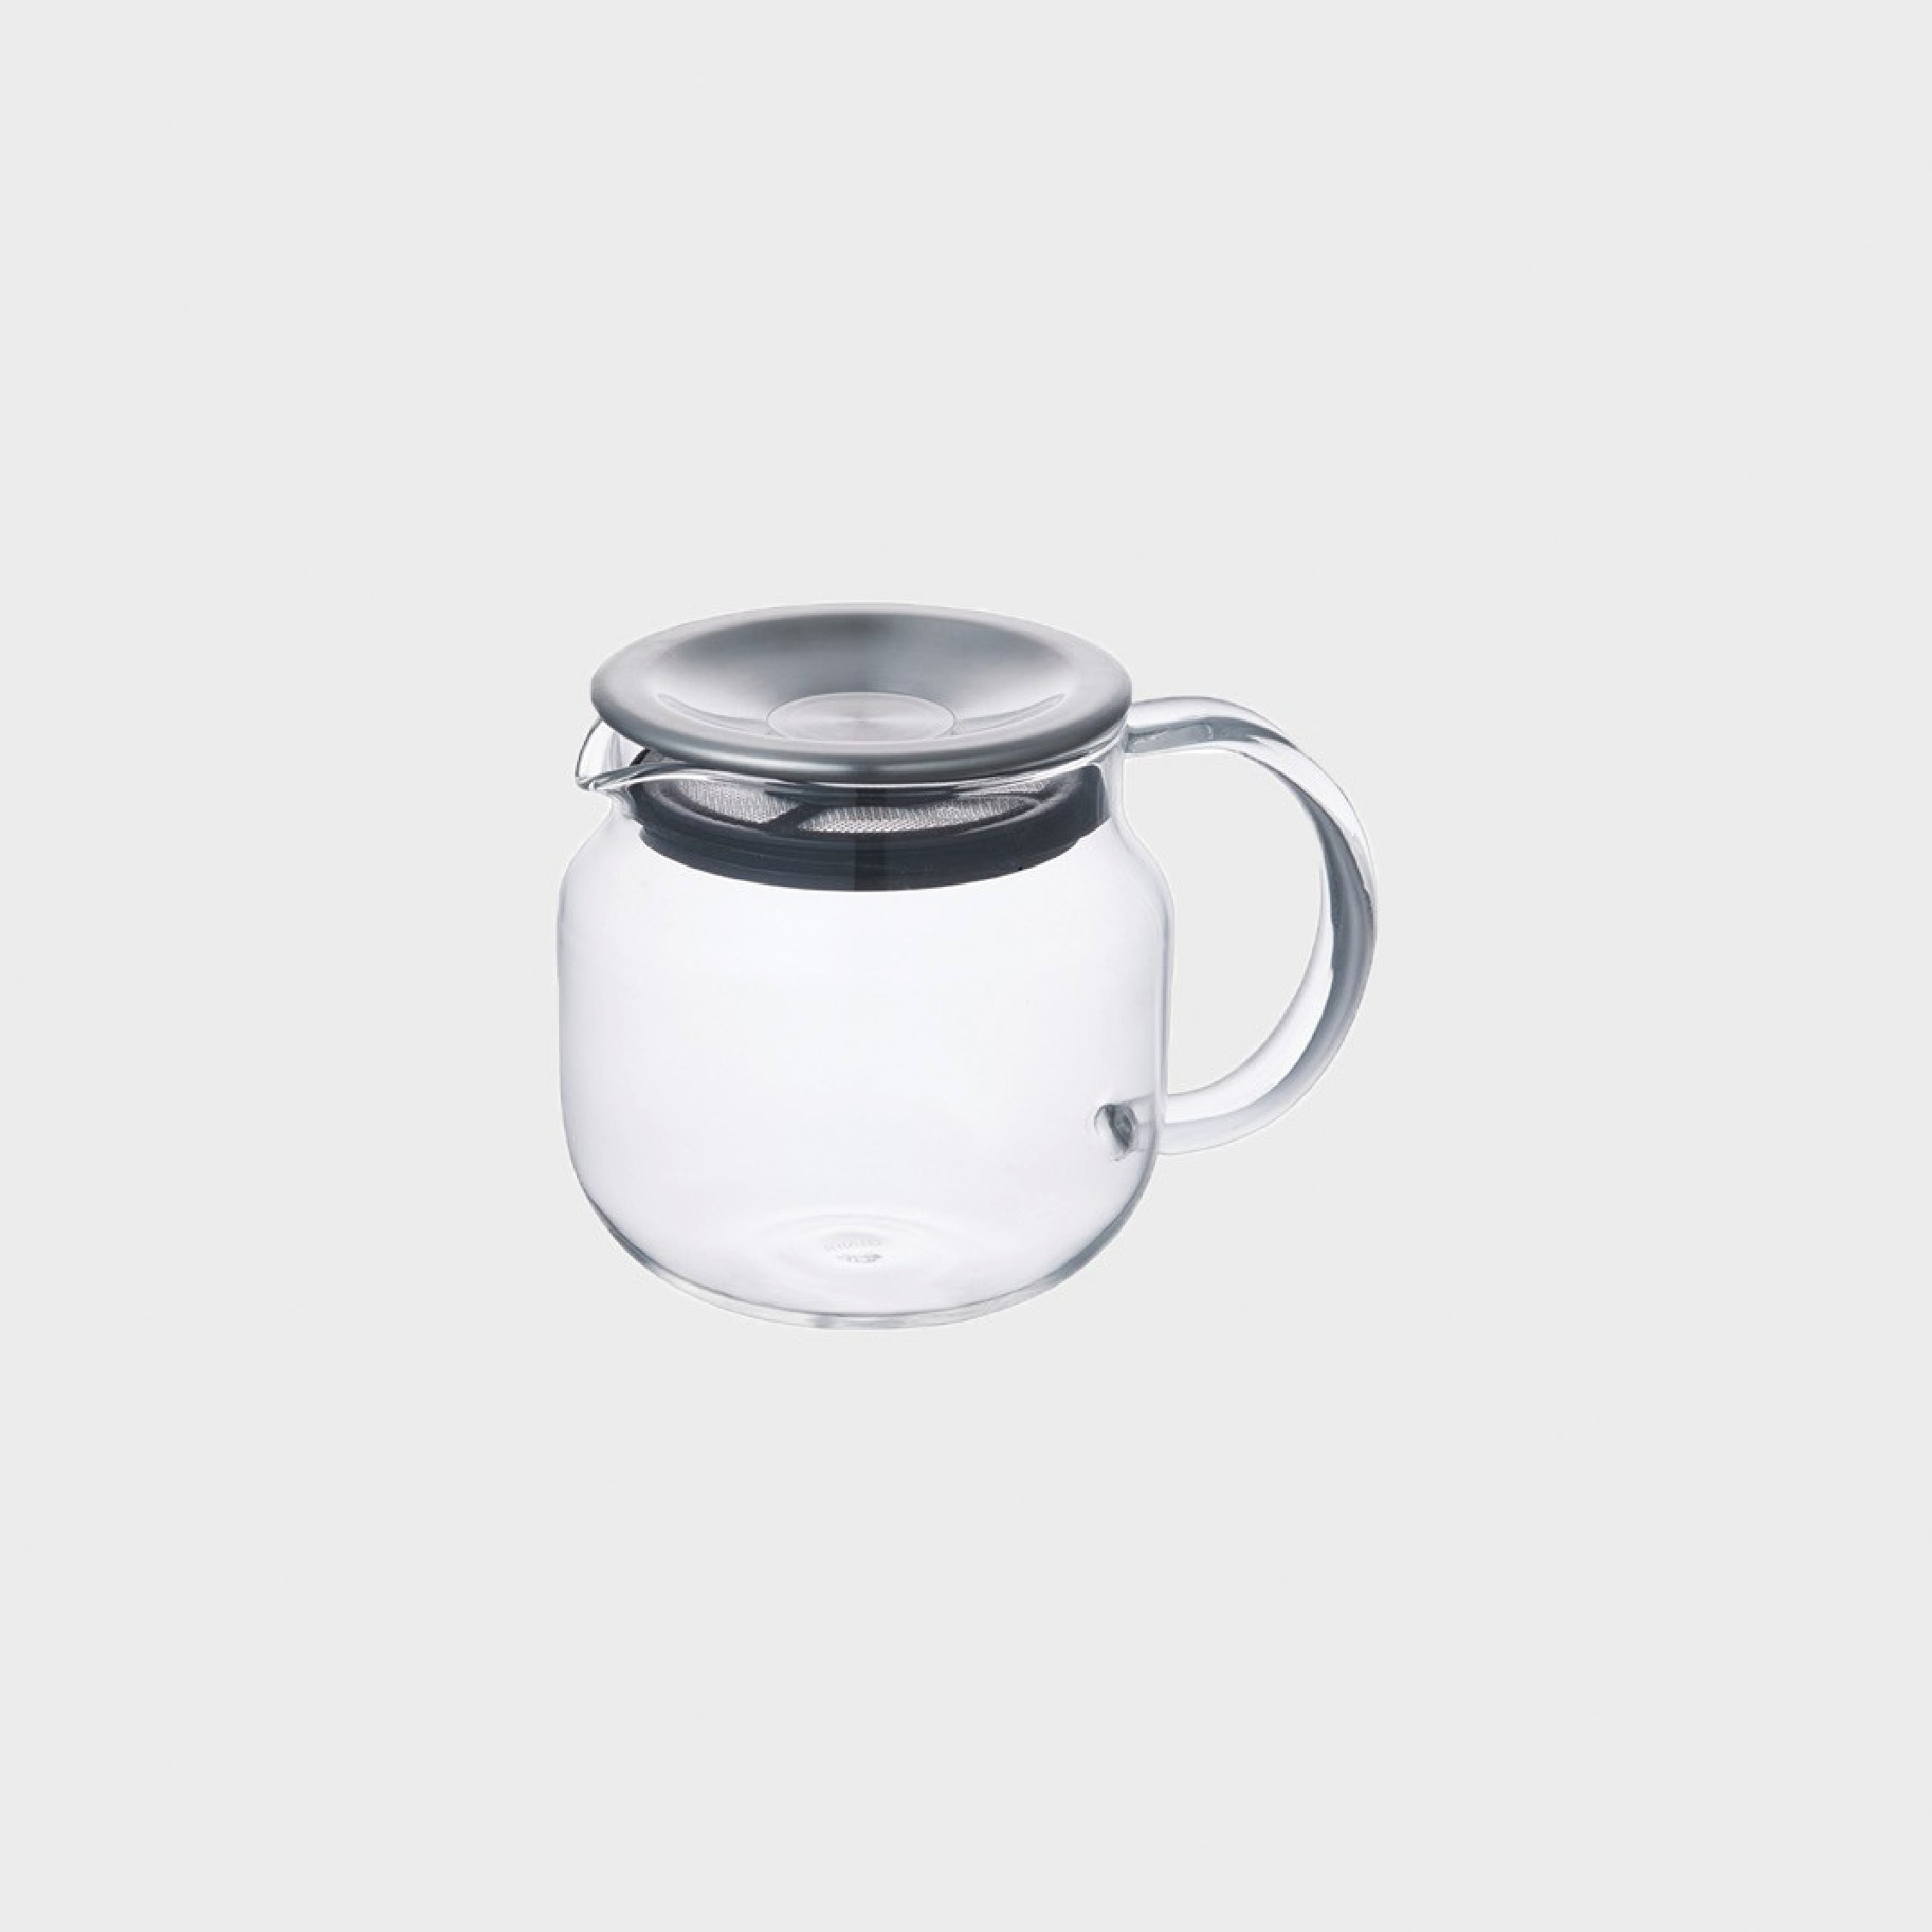 Kinto - UNITEA One Touch Teapot Stainless Steel 450ml